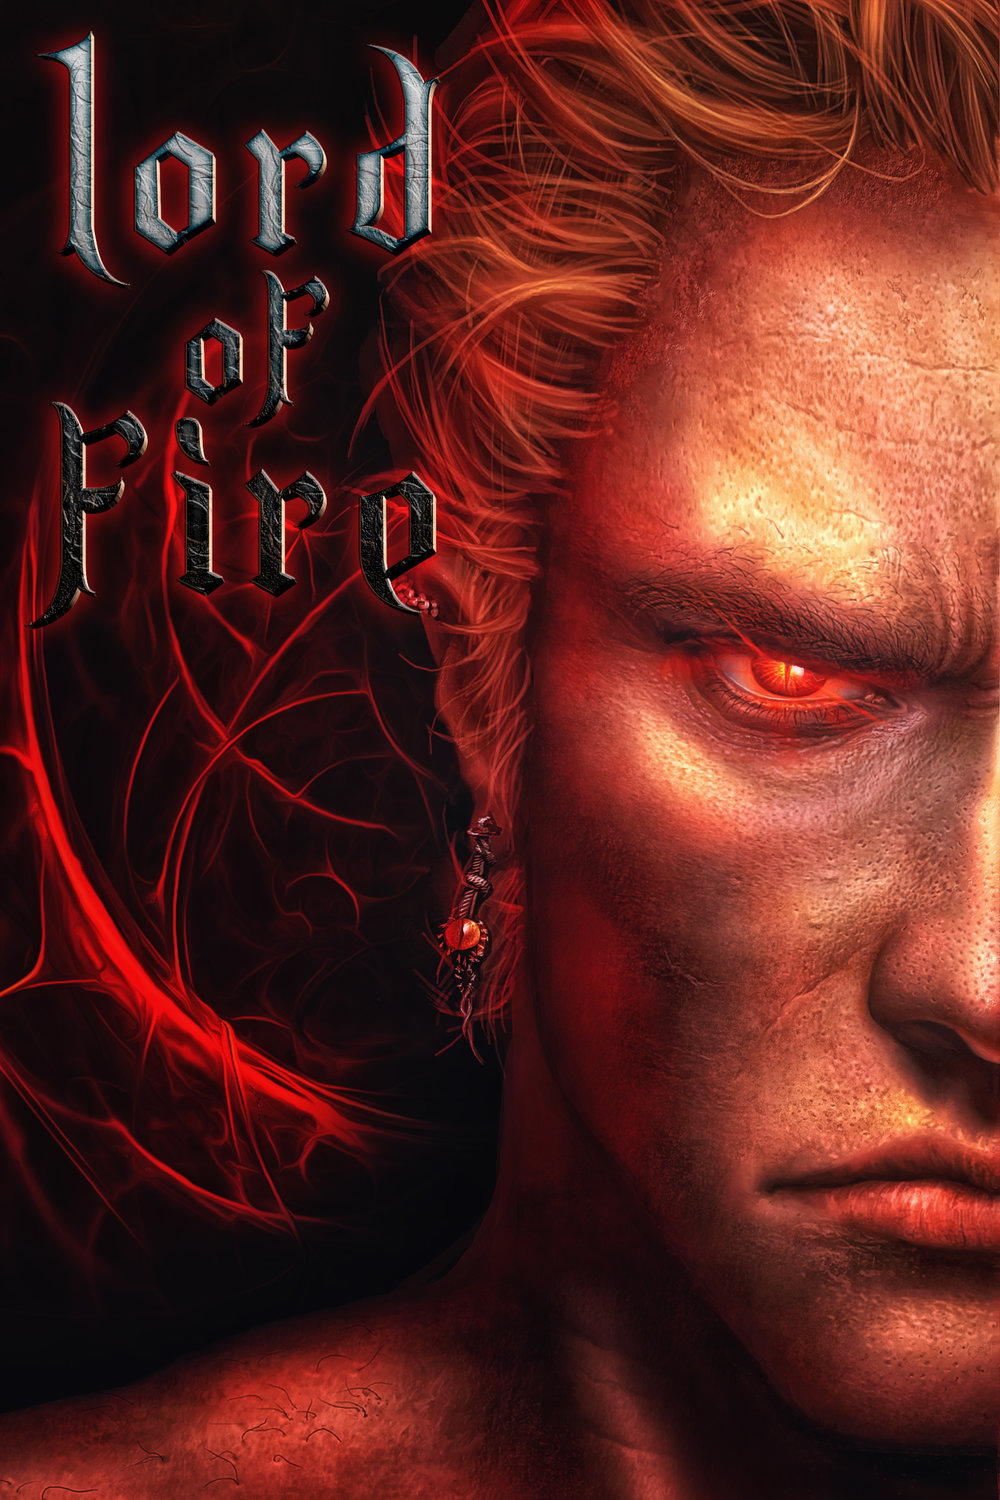 $100 - Lord of Fire